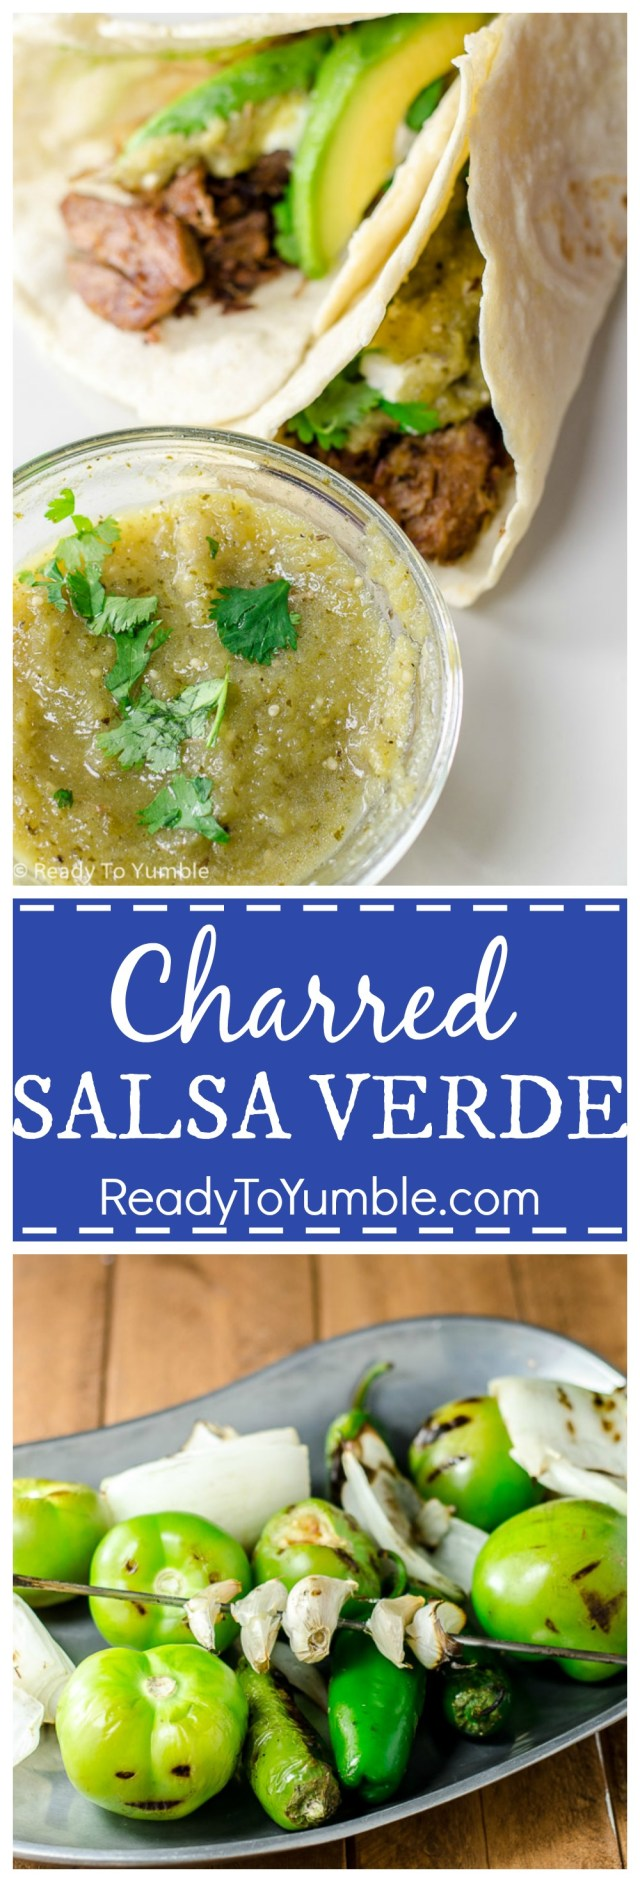 Charred salsa verde: it's salsa, but green! And with more fire!